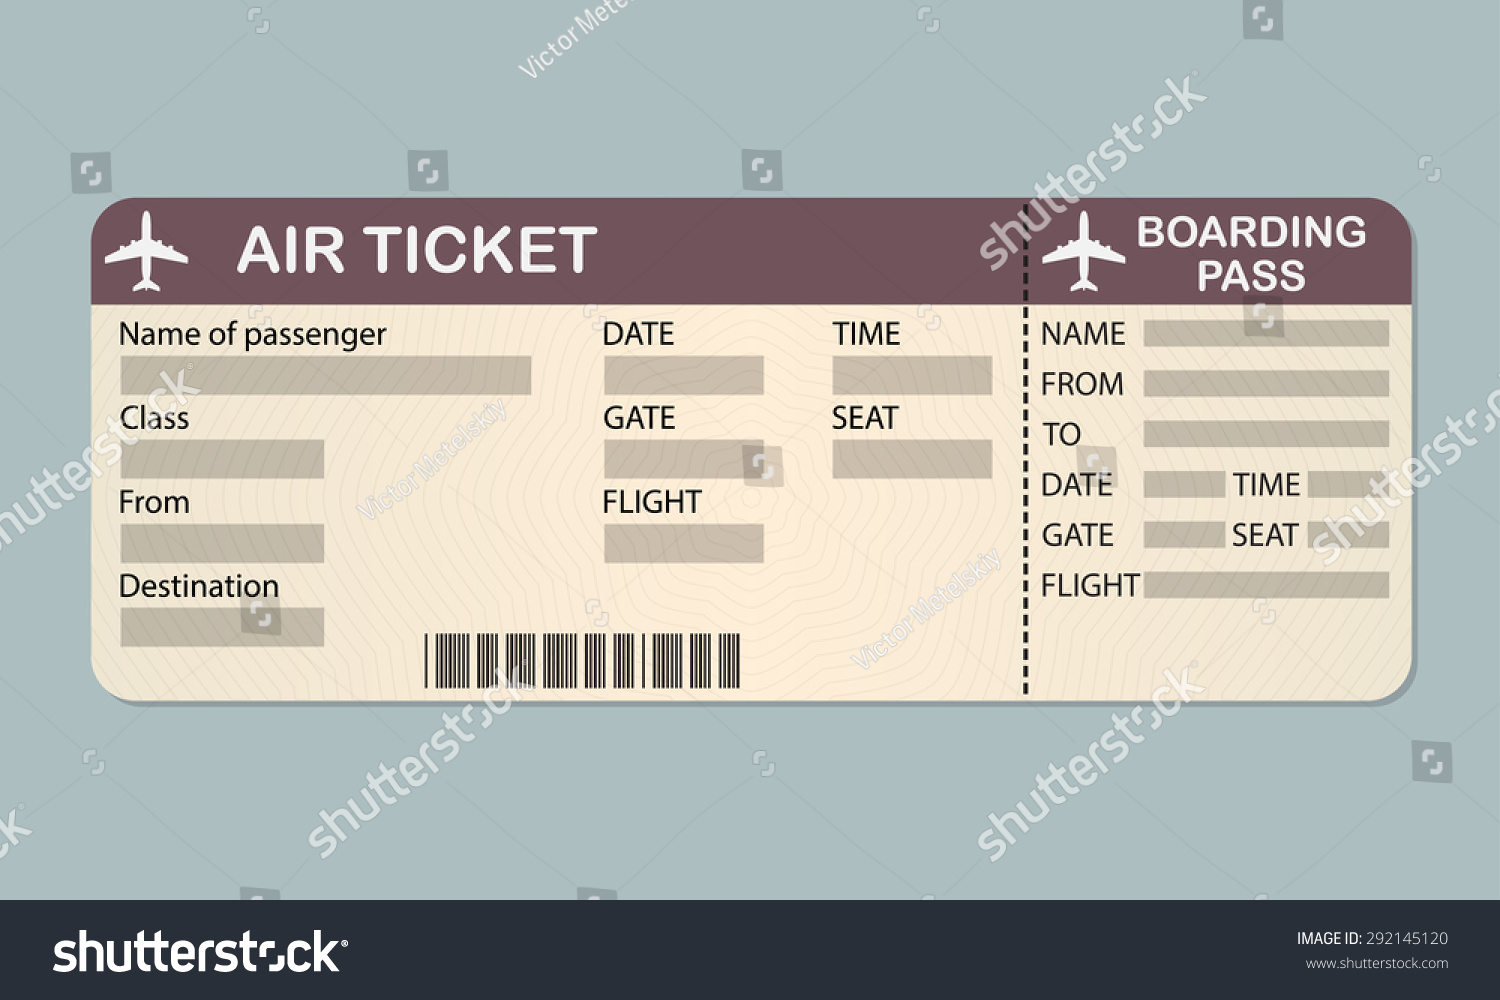 Ticket boarding pass template bing images for Pretend plane ticket template